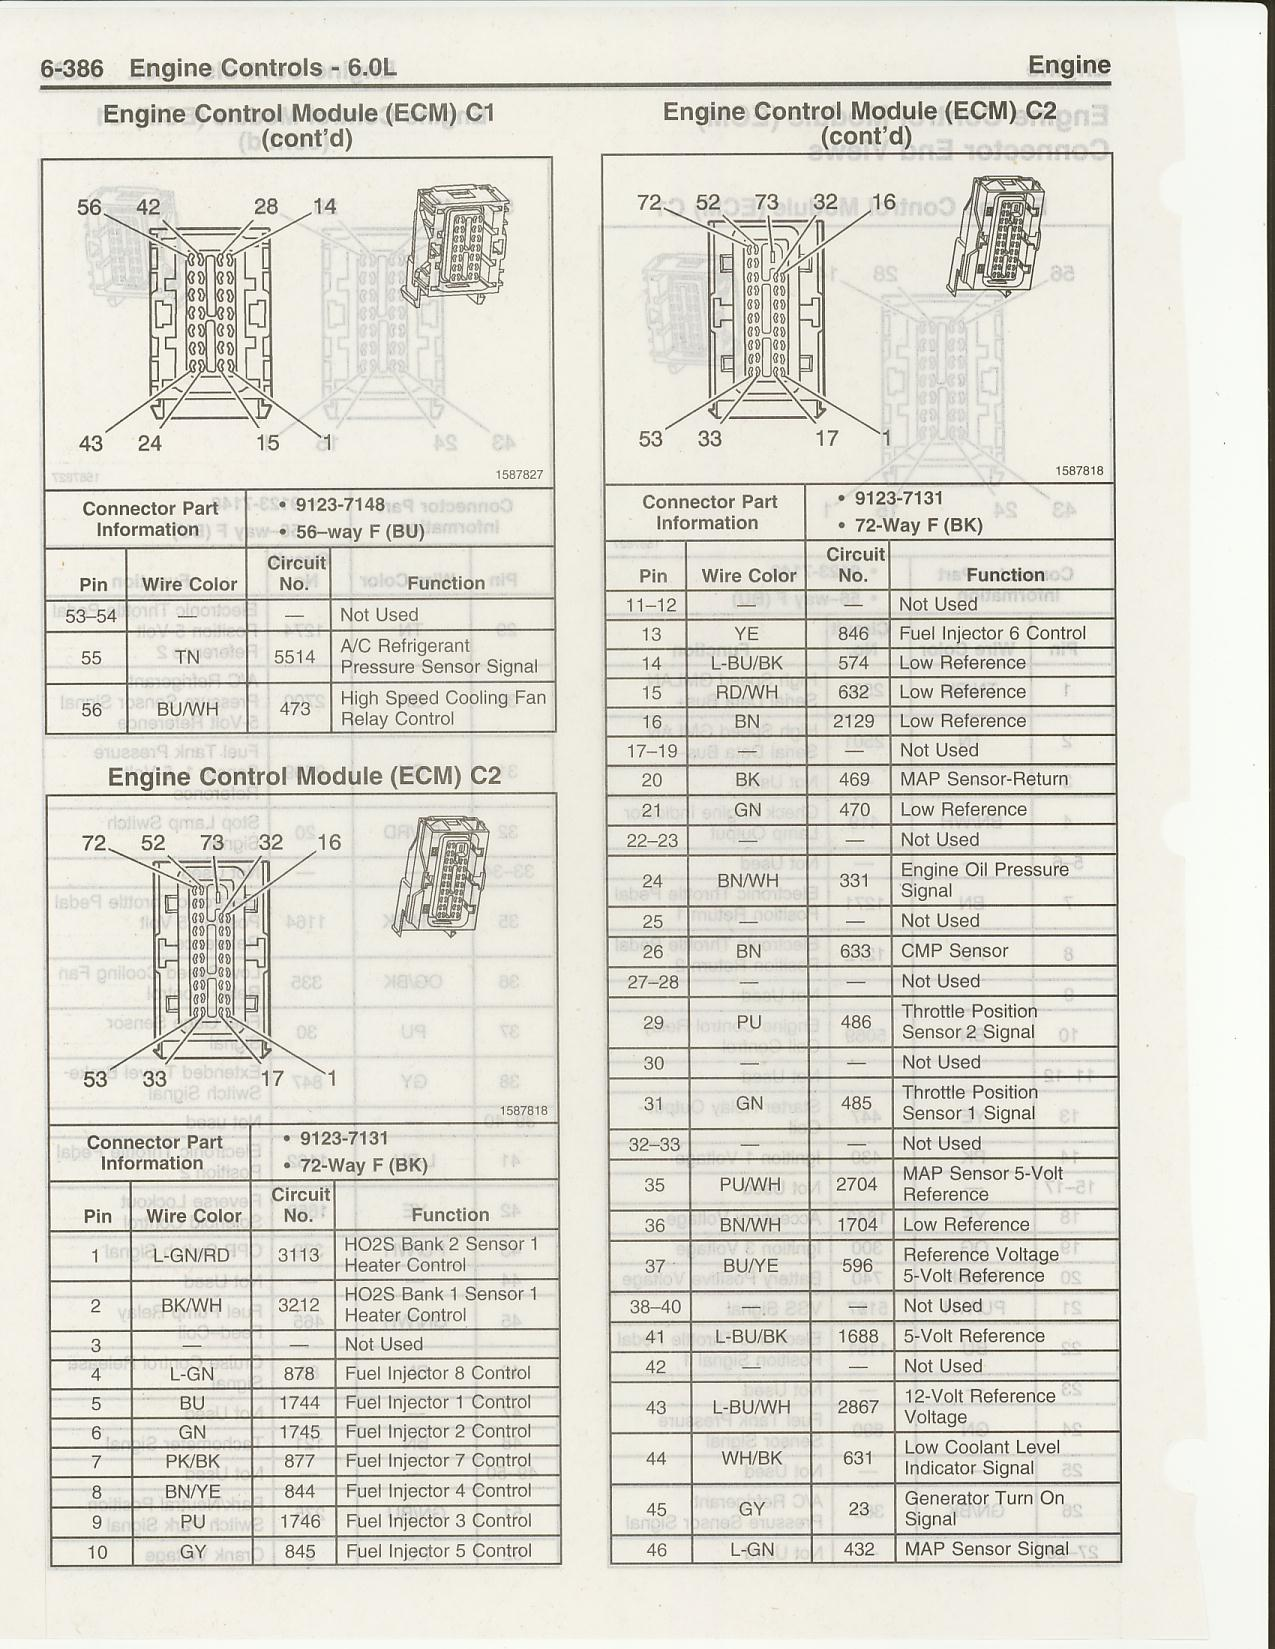 pinouts and wiring diagrams page 5 ls1tech camaro and firebird rh ls1tech com GM Cruise Control Wiring Diagram 85 Camaro Fuel Diagram